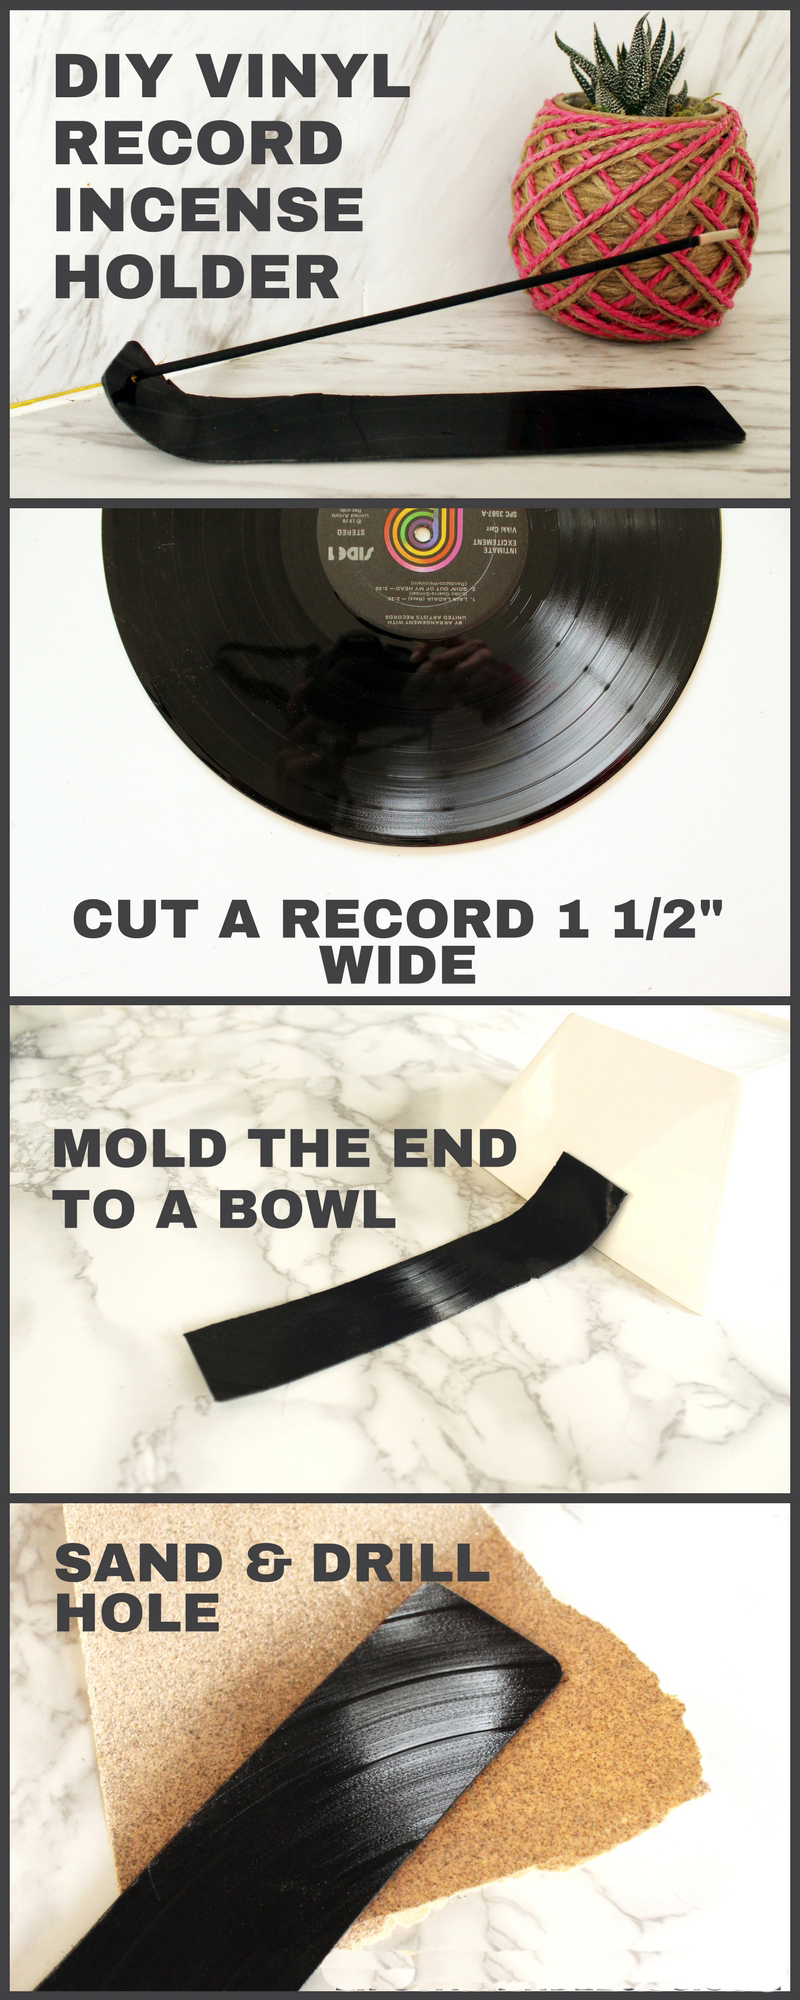 Recycle a Vinyl Record into a DIY Incense Holder with this step by step tutorial